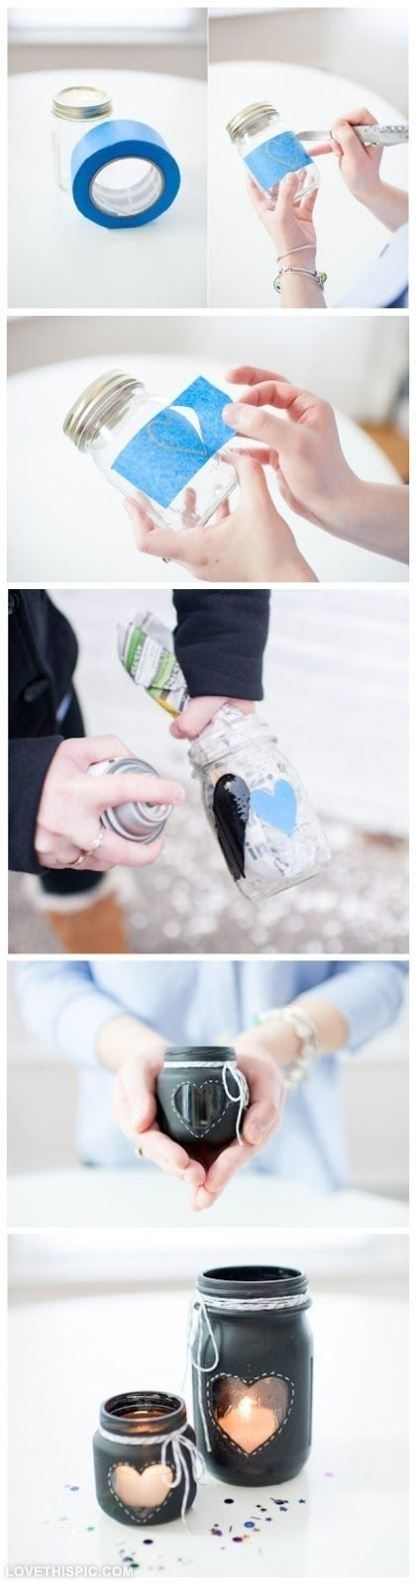 DIY Heart Jars Pictures, Photos, and Images for Facebook, Tumblr, Pinterest, and Twitter